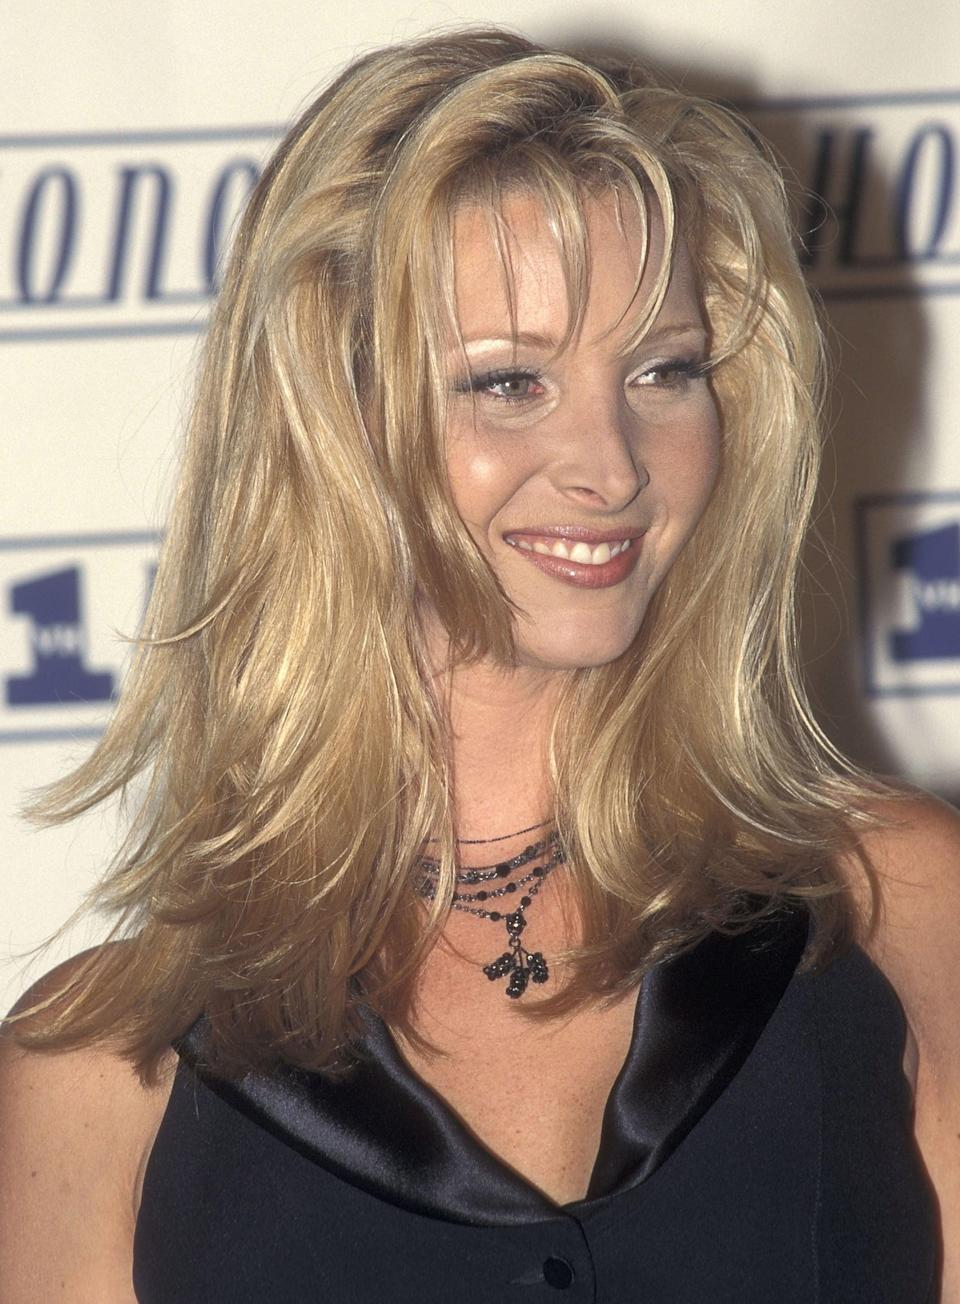 """<p>Lisa Kudrow was 31 years old when she made her debut as Phoebe Buffay in <strong>Friends</strong>, which makes her the eldest of her cast mates. Soon after the first season aired, Kudrow married her husband Michel Stern. When Kudrow announced she and Michel were expecting, the producers wrote her pregnancy into the script for season four. </p> <p>""""The six of us would do a huddle backstage and just say, 'All right, have a good show, love you love you love you love you.' And when I was pregnant, then they would say, 'Have a great show, love you love you - love you, little Julian!' Cause we knew it was a boy and that was his name. So sweet, <a href=""""http://people.com/parents/lisa-kudrow-son-julian-graduates-university-southern-california/"""" class=""""link rapid-noclick-resp"""" rel=""""nofollow noopener"""" target=""""_blank"""" data-ylk=""""slk:they included my little fetus in the huddle"""">they included my little fetus in the huddle</a>,"""" she told <strong>People</strong> in 2018. In 1998, she won a Primetime Emmy for Outstanding Supporting Actress in a Comedy Series and a SAG award for Outstanding Performance by a Female Actor in a Comedy Series in 2000 for her role of Phoebe.<br></p>"""